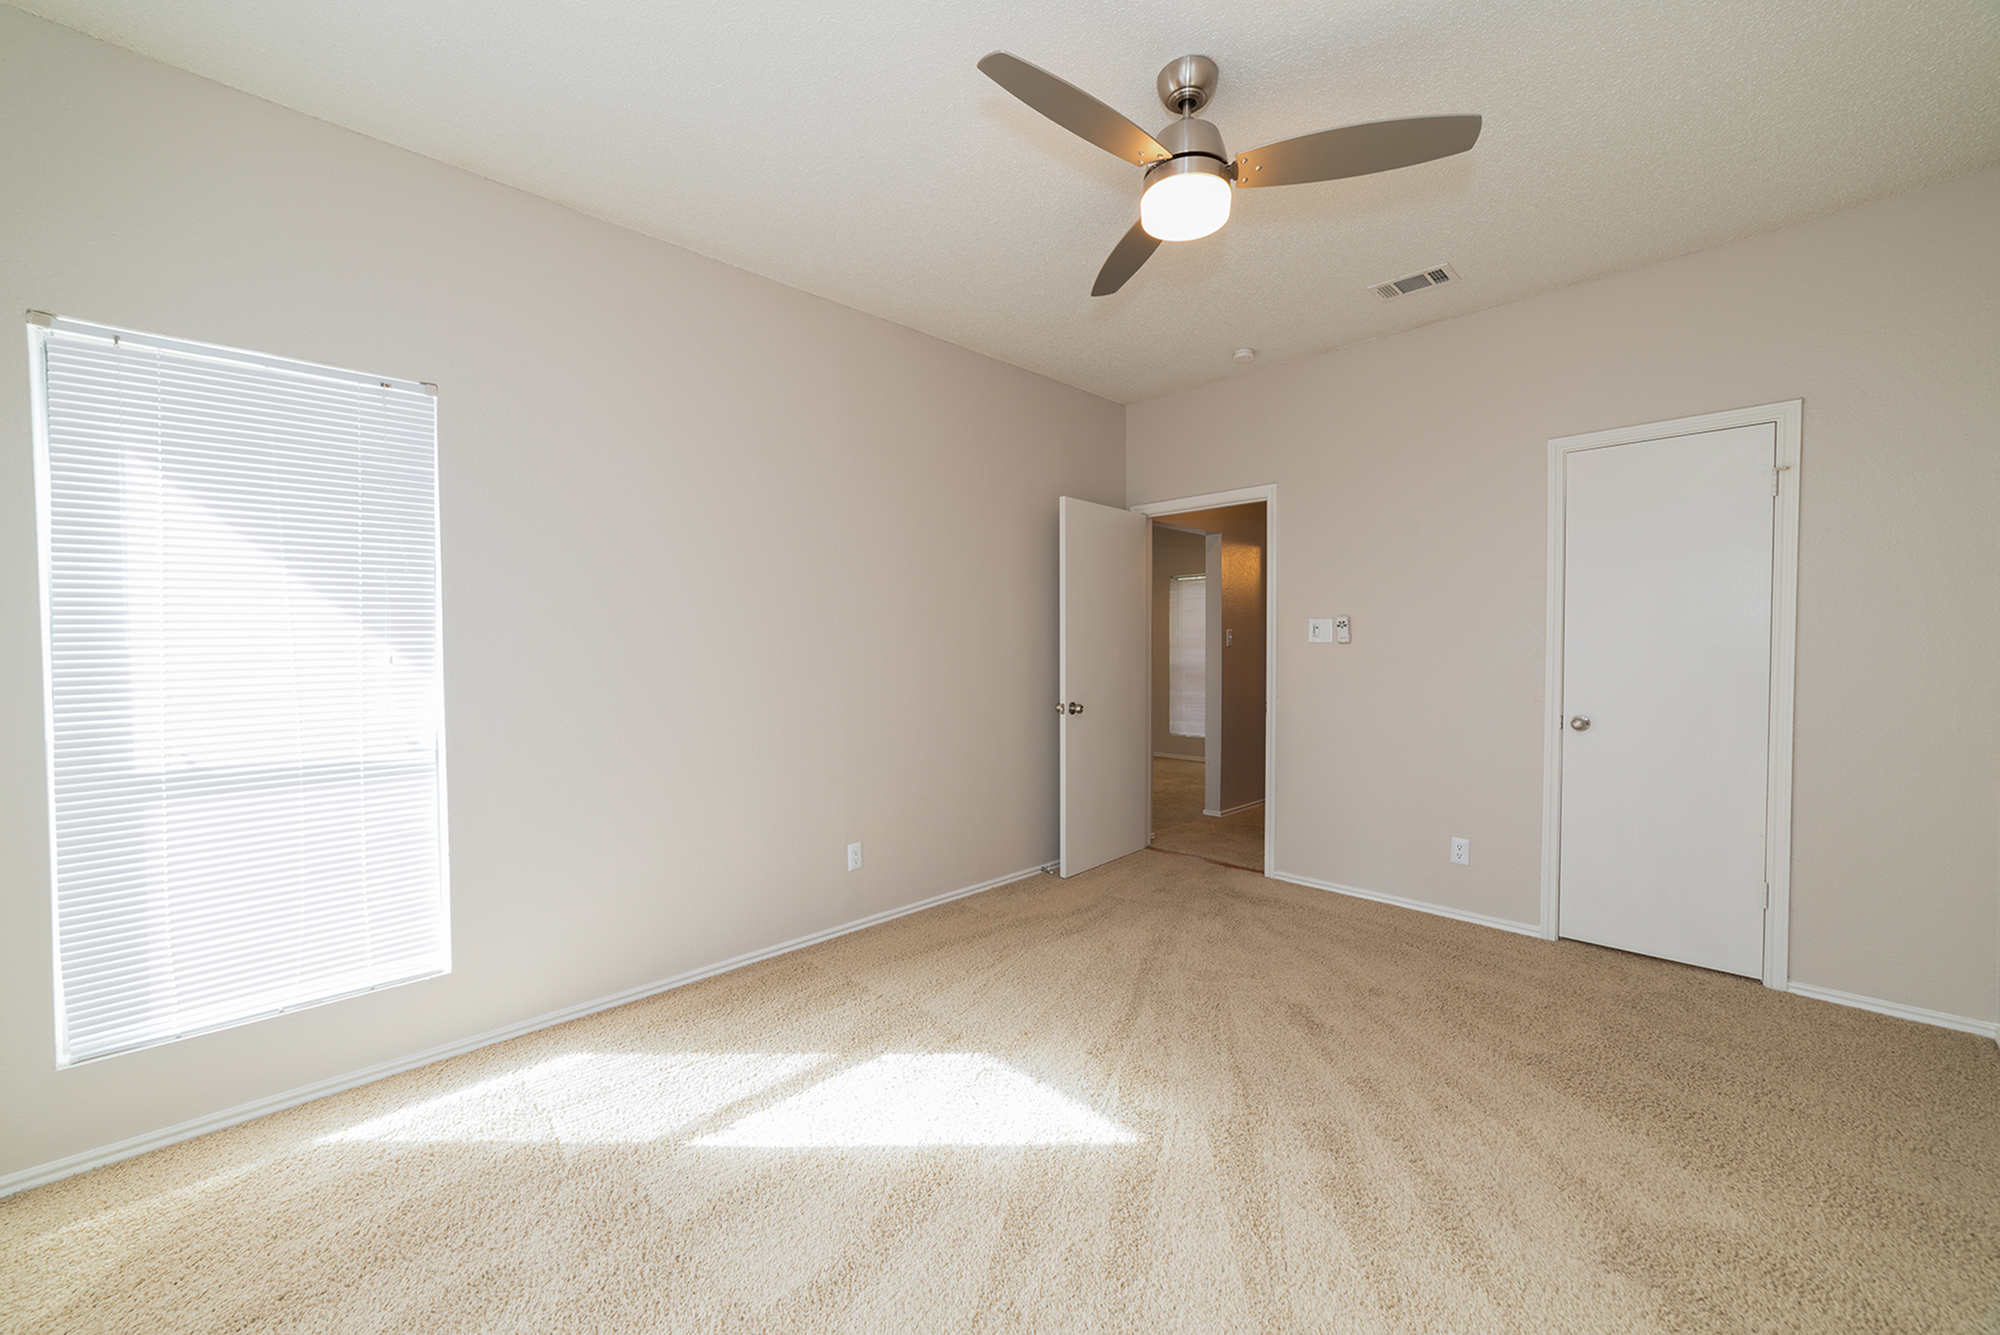 Image of Ceiling Fans for Canyon Creek Apartment Homes